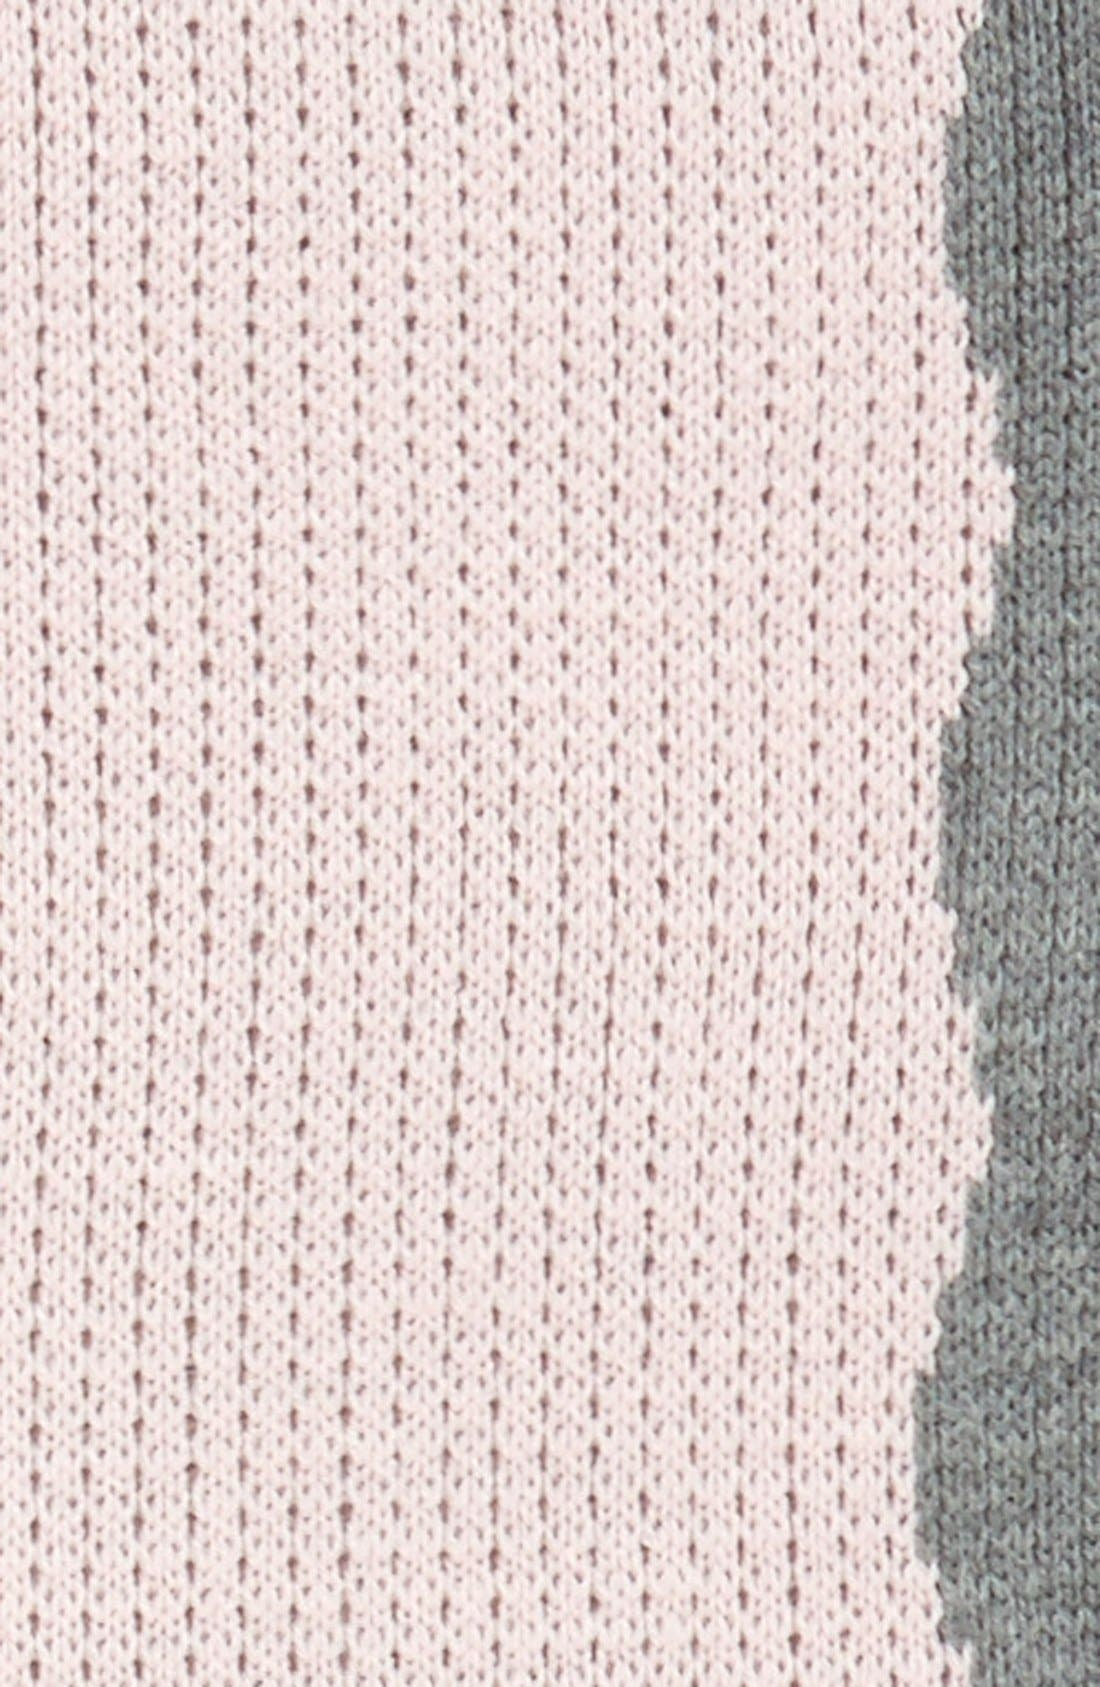 'Heart' Personalized Crib Blanket,                             Alternate thumbnail 2, color,                             Pink